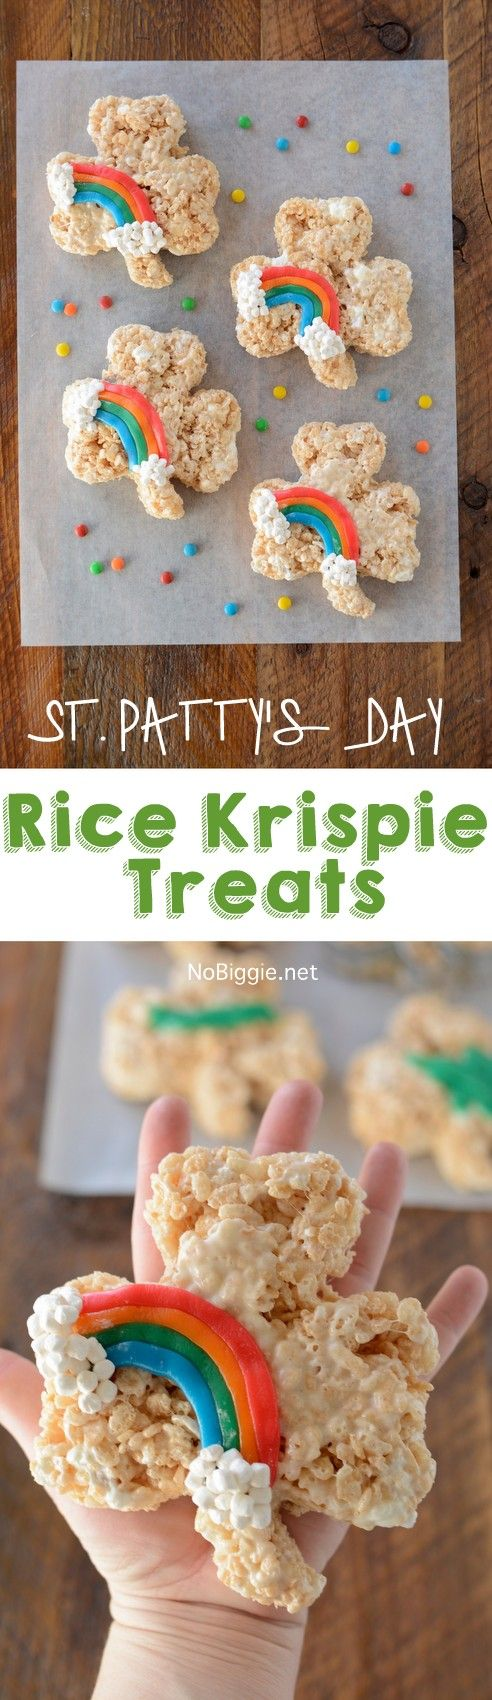 St. Patty's Day Rice Krispie Treats | NoBiggie.net